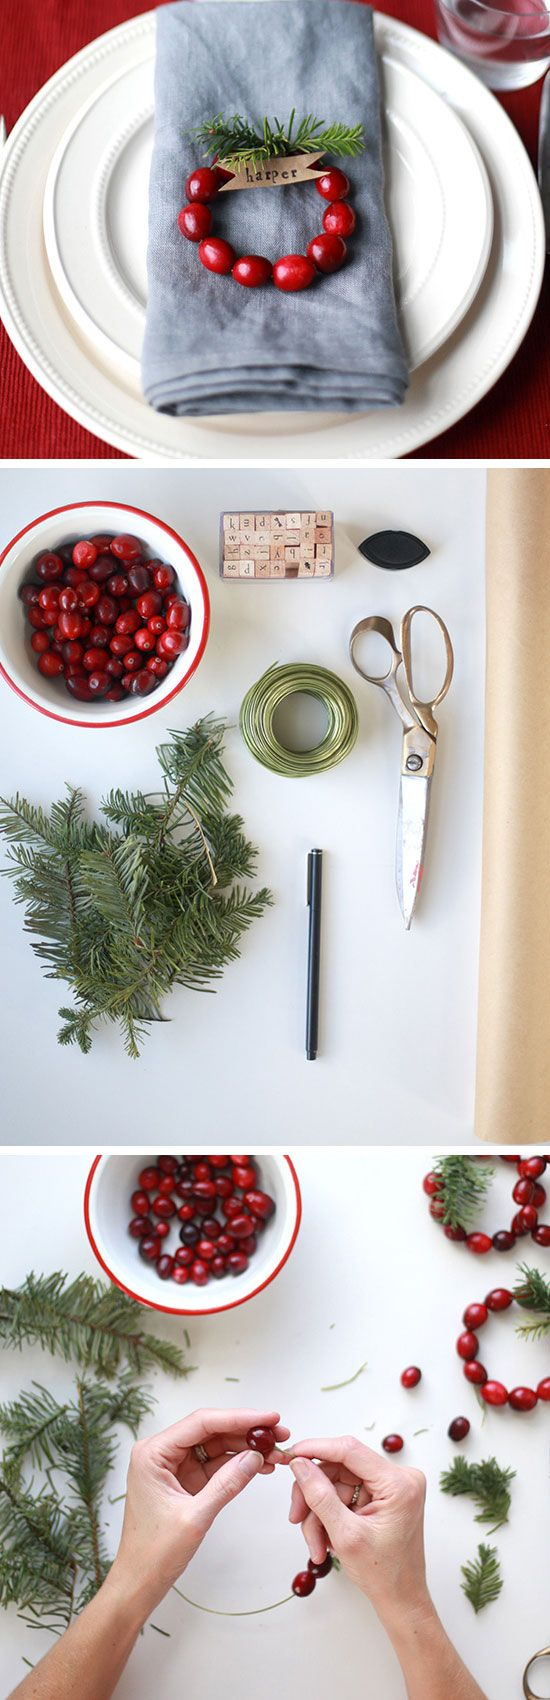 DIY Christmas Table Decoration Ideas FAÇA UM ENFEITE PARA MARCAR LUGAR NA MESA DE NATAL